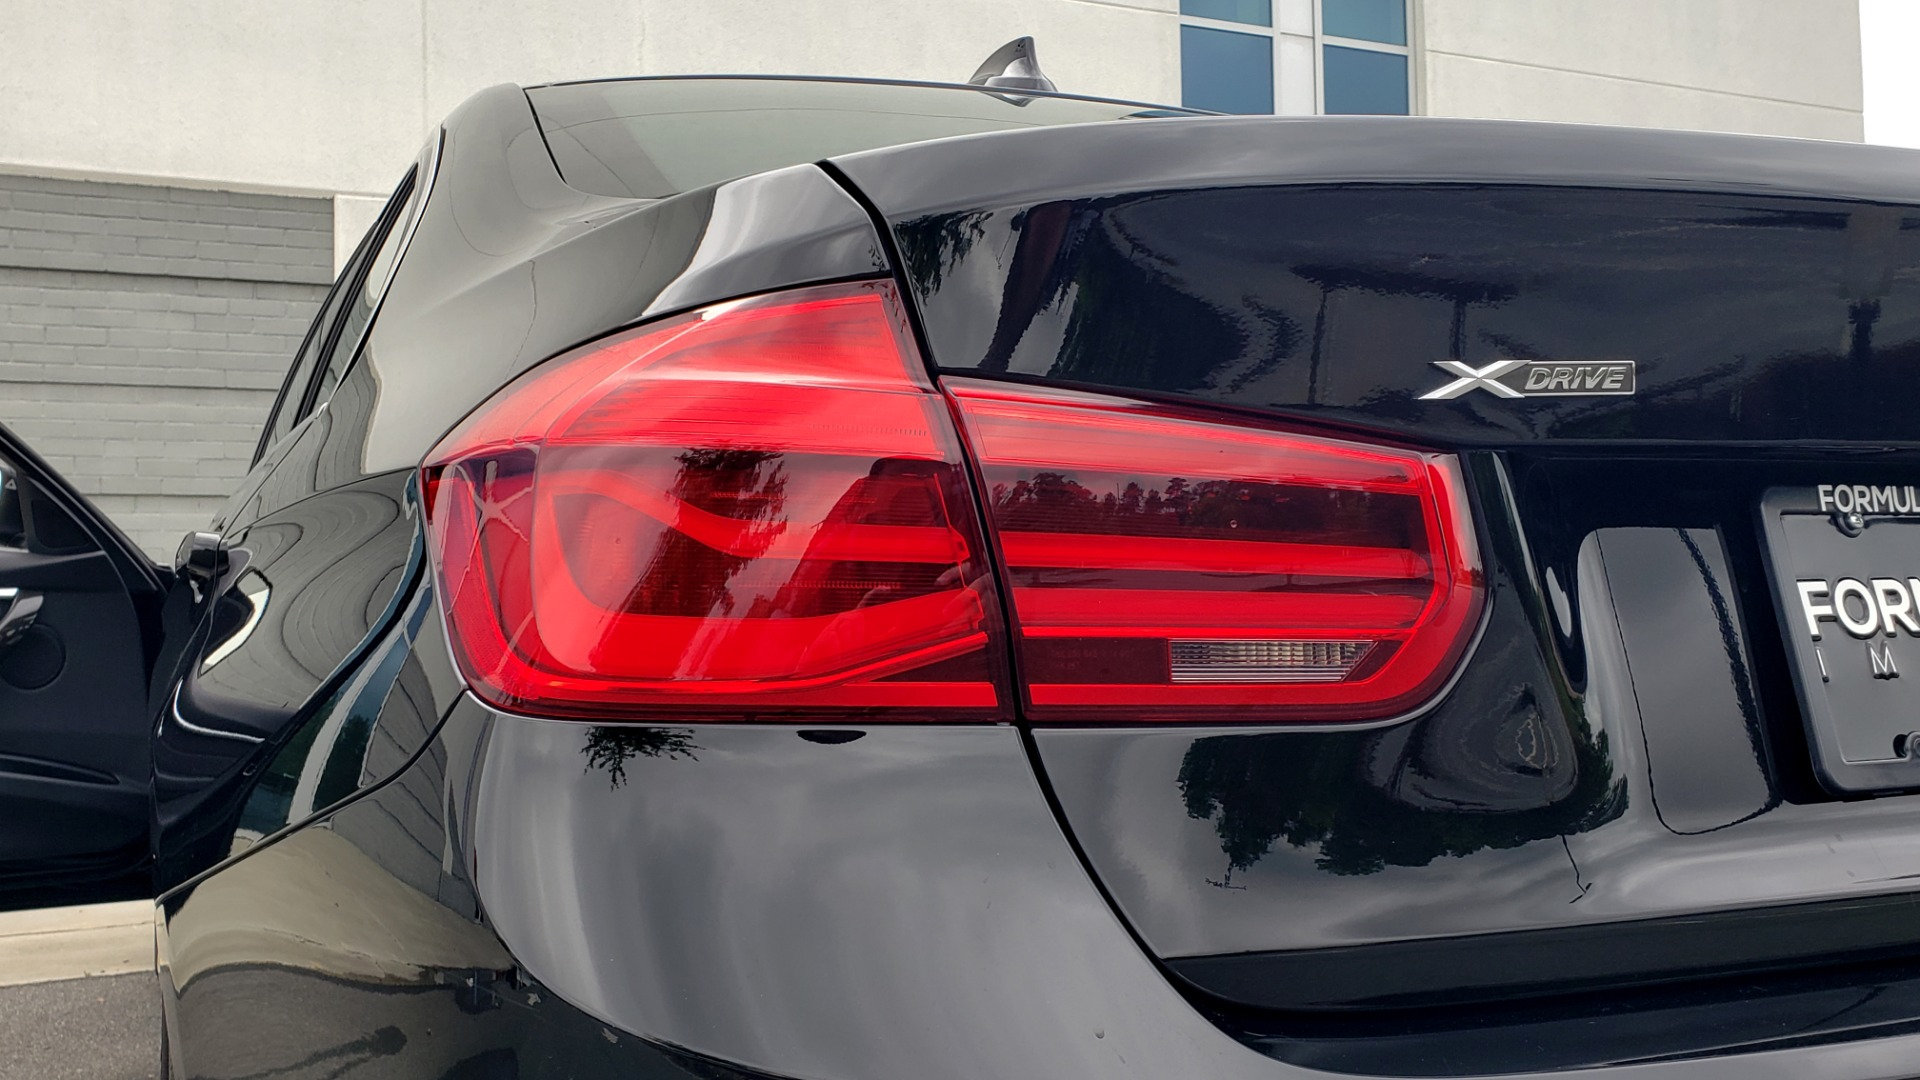 Used 2018 BMW 3 SERIES 330IXDRIVE / CONV PKG / NAV / SUNROOF / HTD STS / REARVIEW for sale $26,552 at Formula Imports in Charlotte NC 28227 27